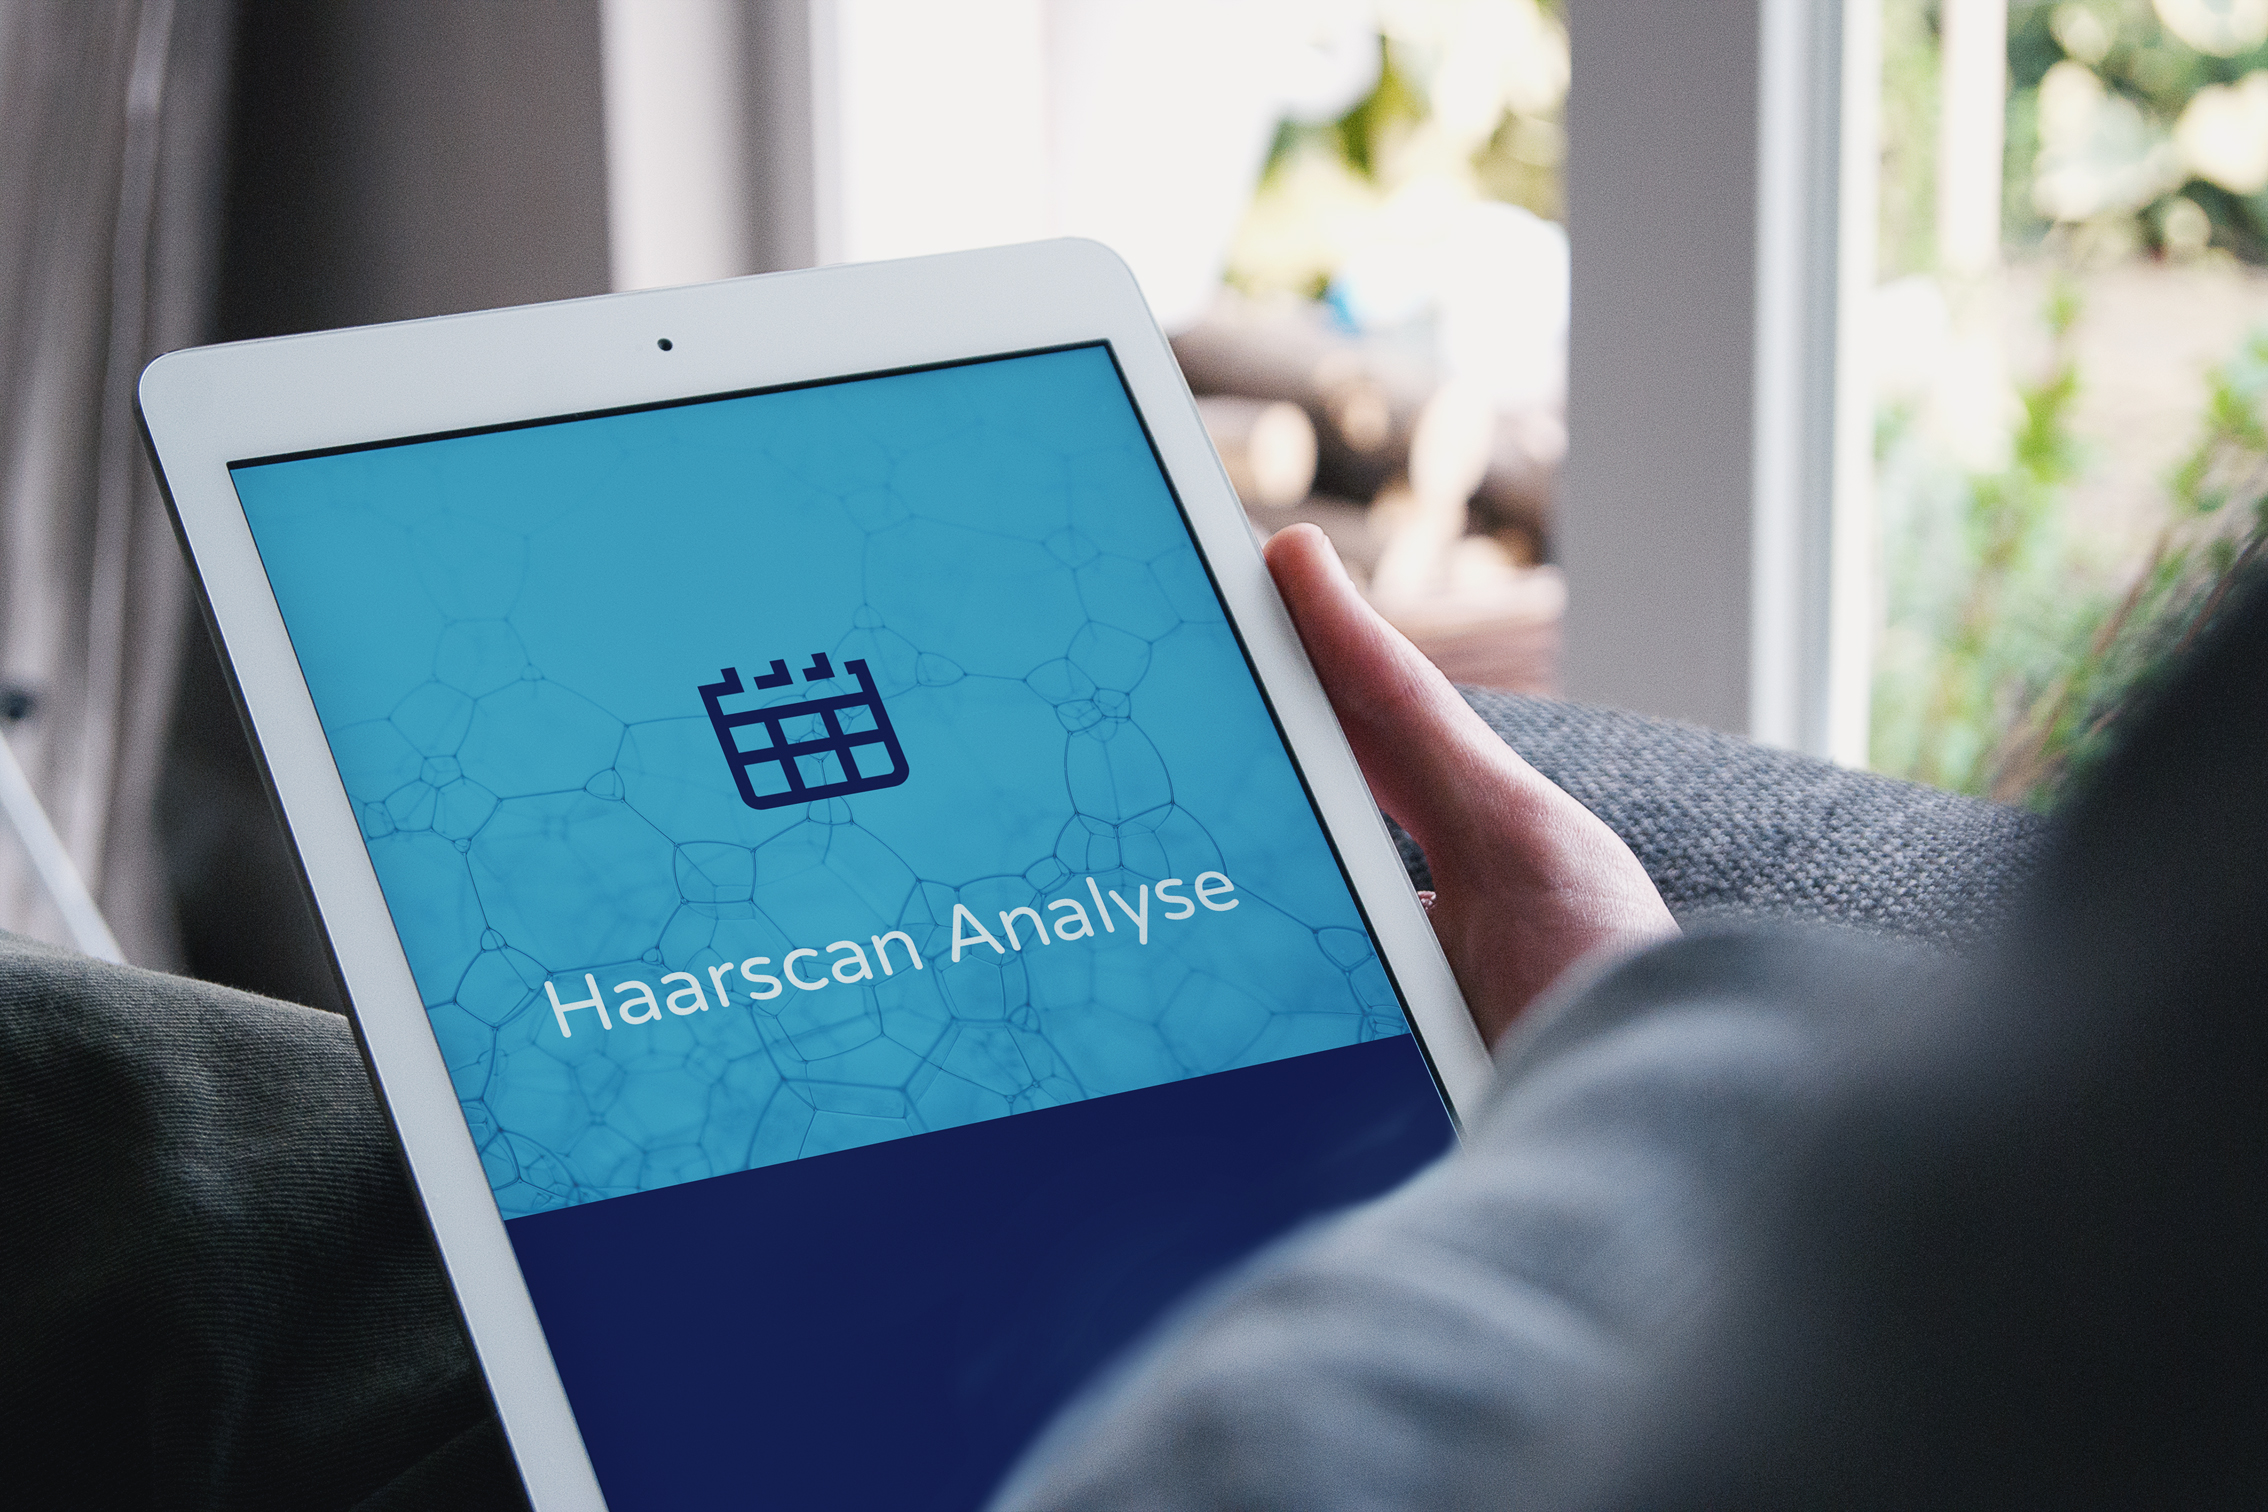 celluable, haarscan analyse